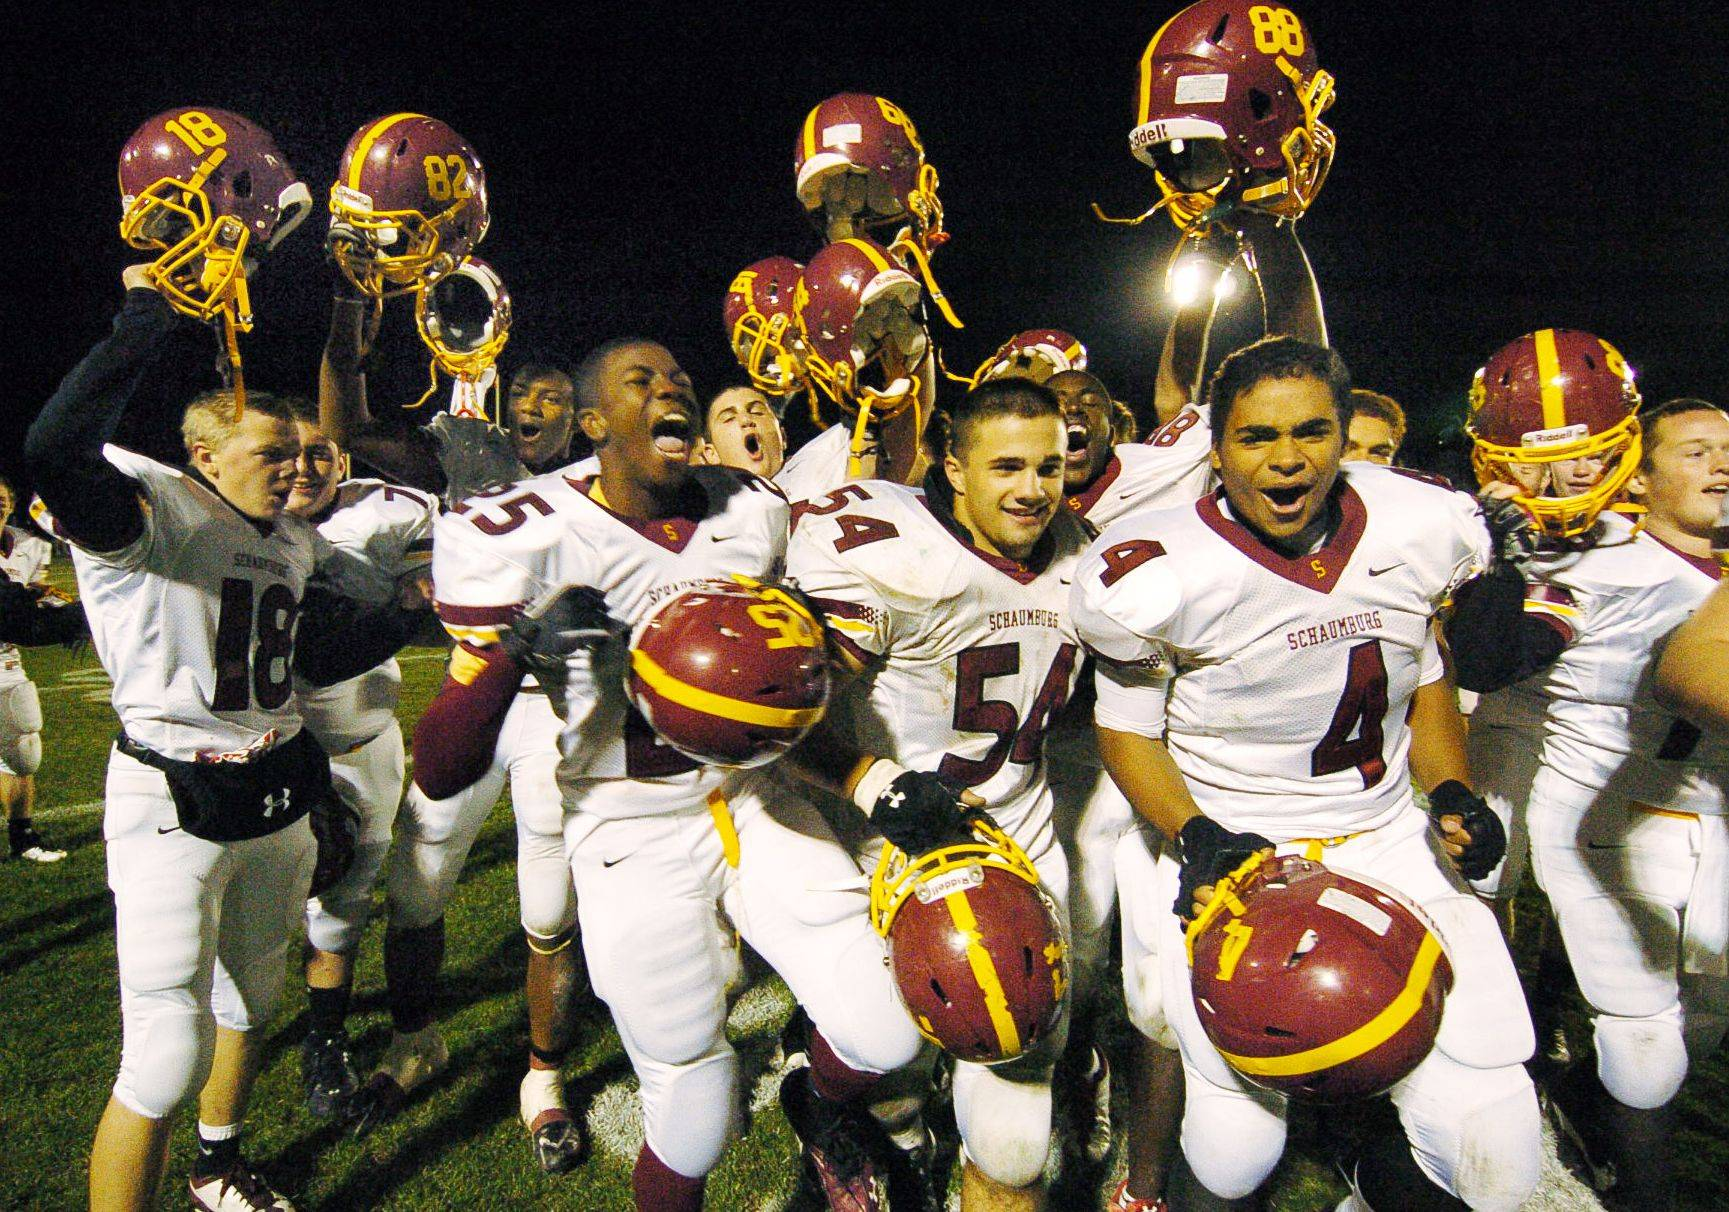 The Schaumburg Saxons celebrate after beating the Elk Grove Grenadiers in first-round playoff football.Bob Chwedyk/bchwedyk@dailyherald.com Playoffs - Round One - Photos from the Elk Grove vs Schaumburg game on Saturday, October 30th in Elk Grove.